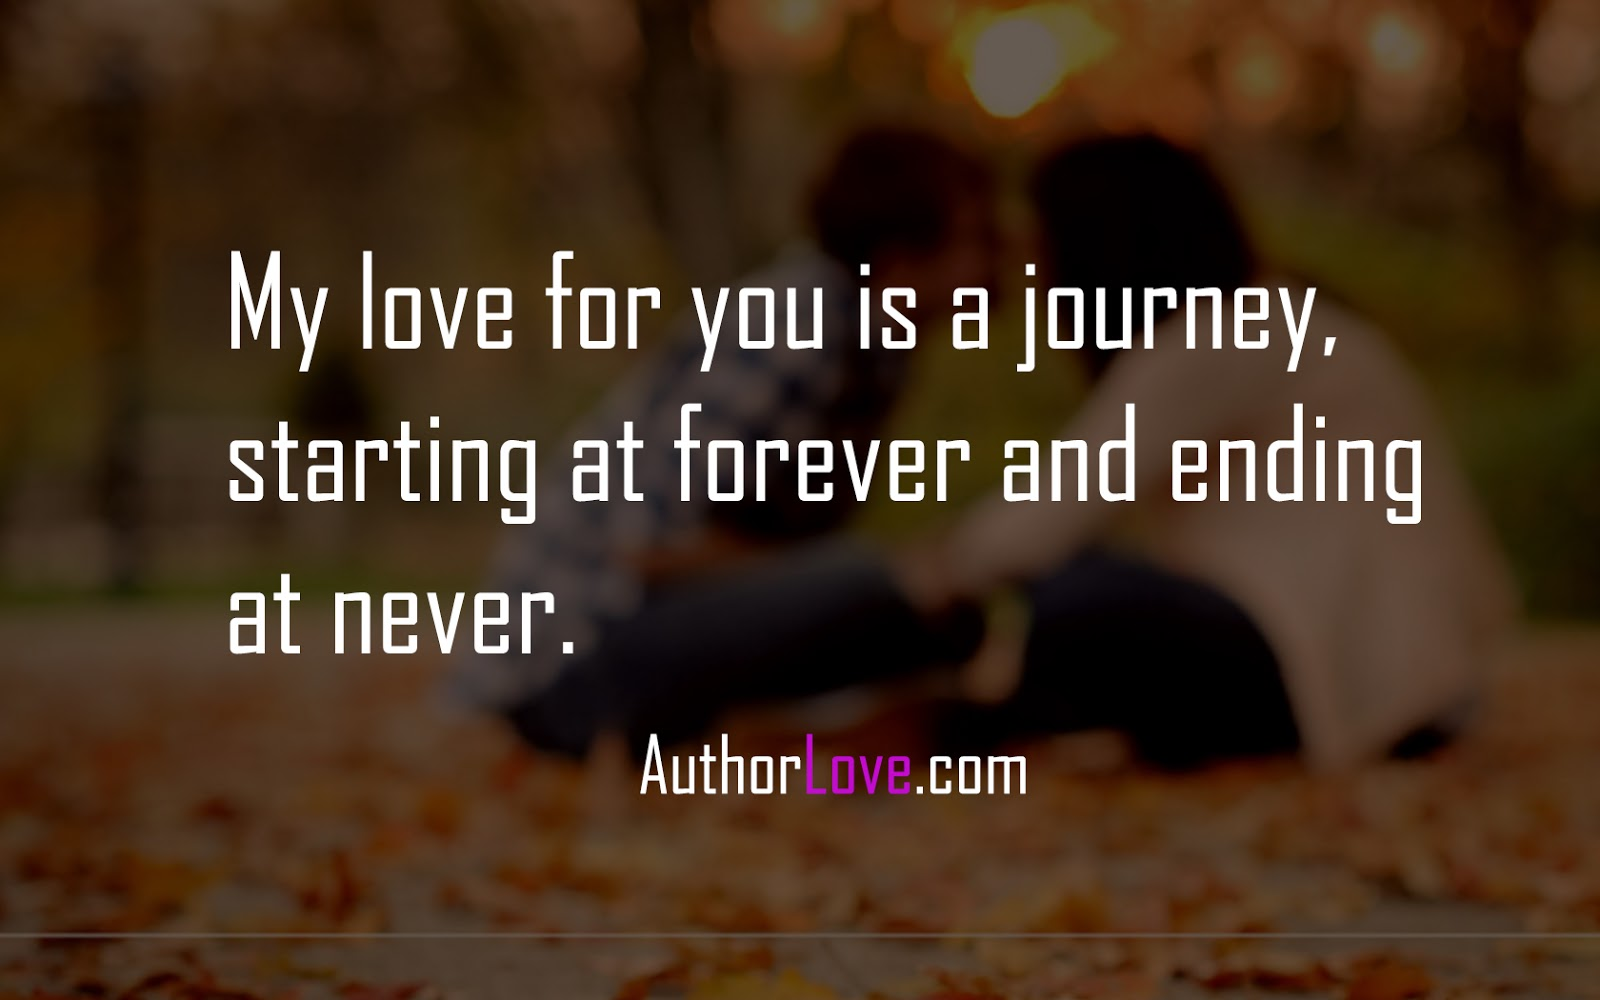 Quotes Journey My Love For You Is A Journey Starting At Forever And Ending At